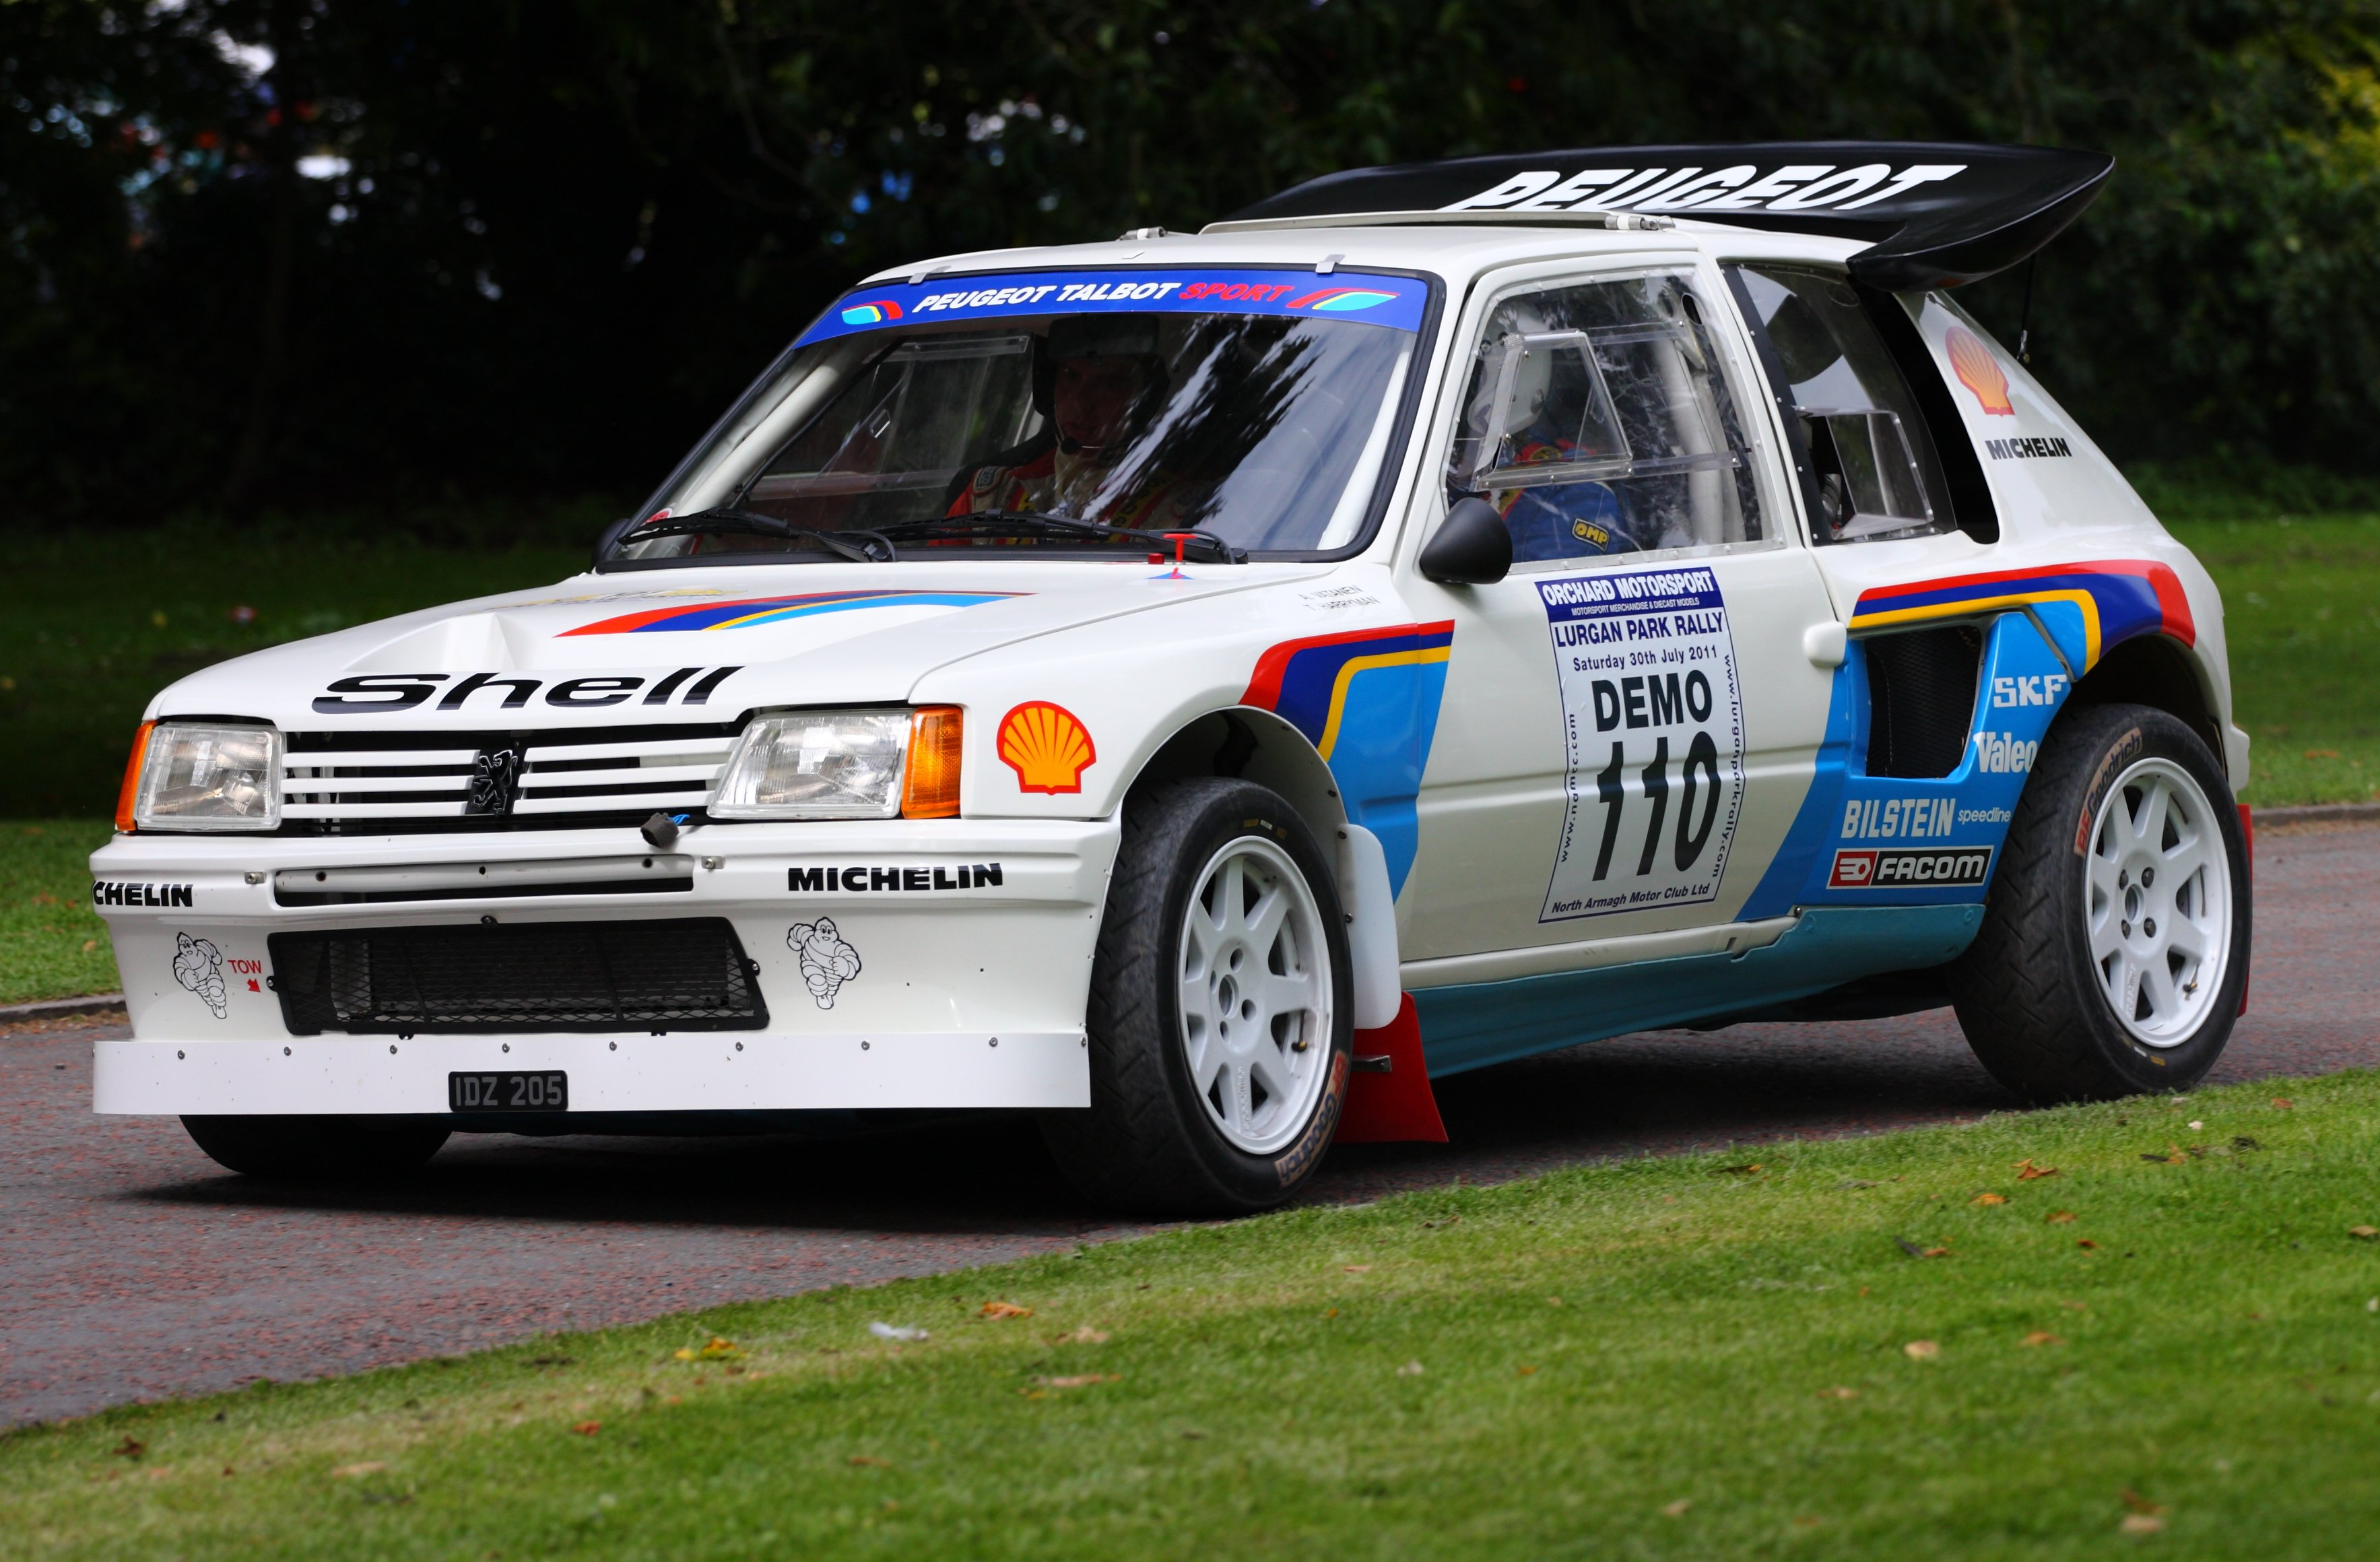 Group B Rally Cars Wallpapers Peugeot 205 Turbo 16 Rally Groupe B Cars Sport Wallpaper